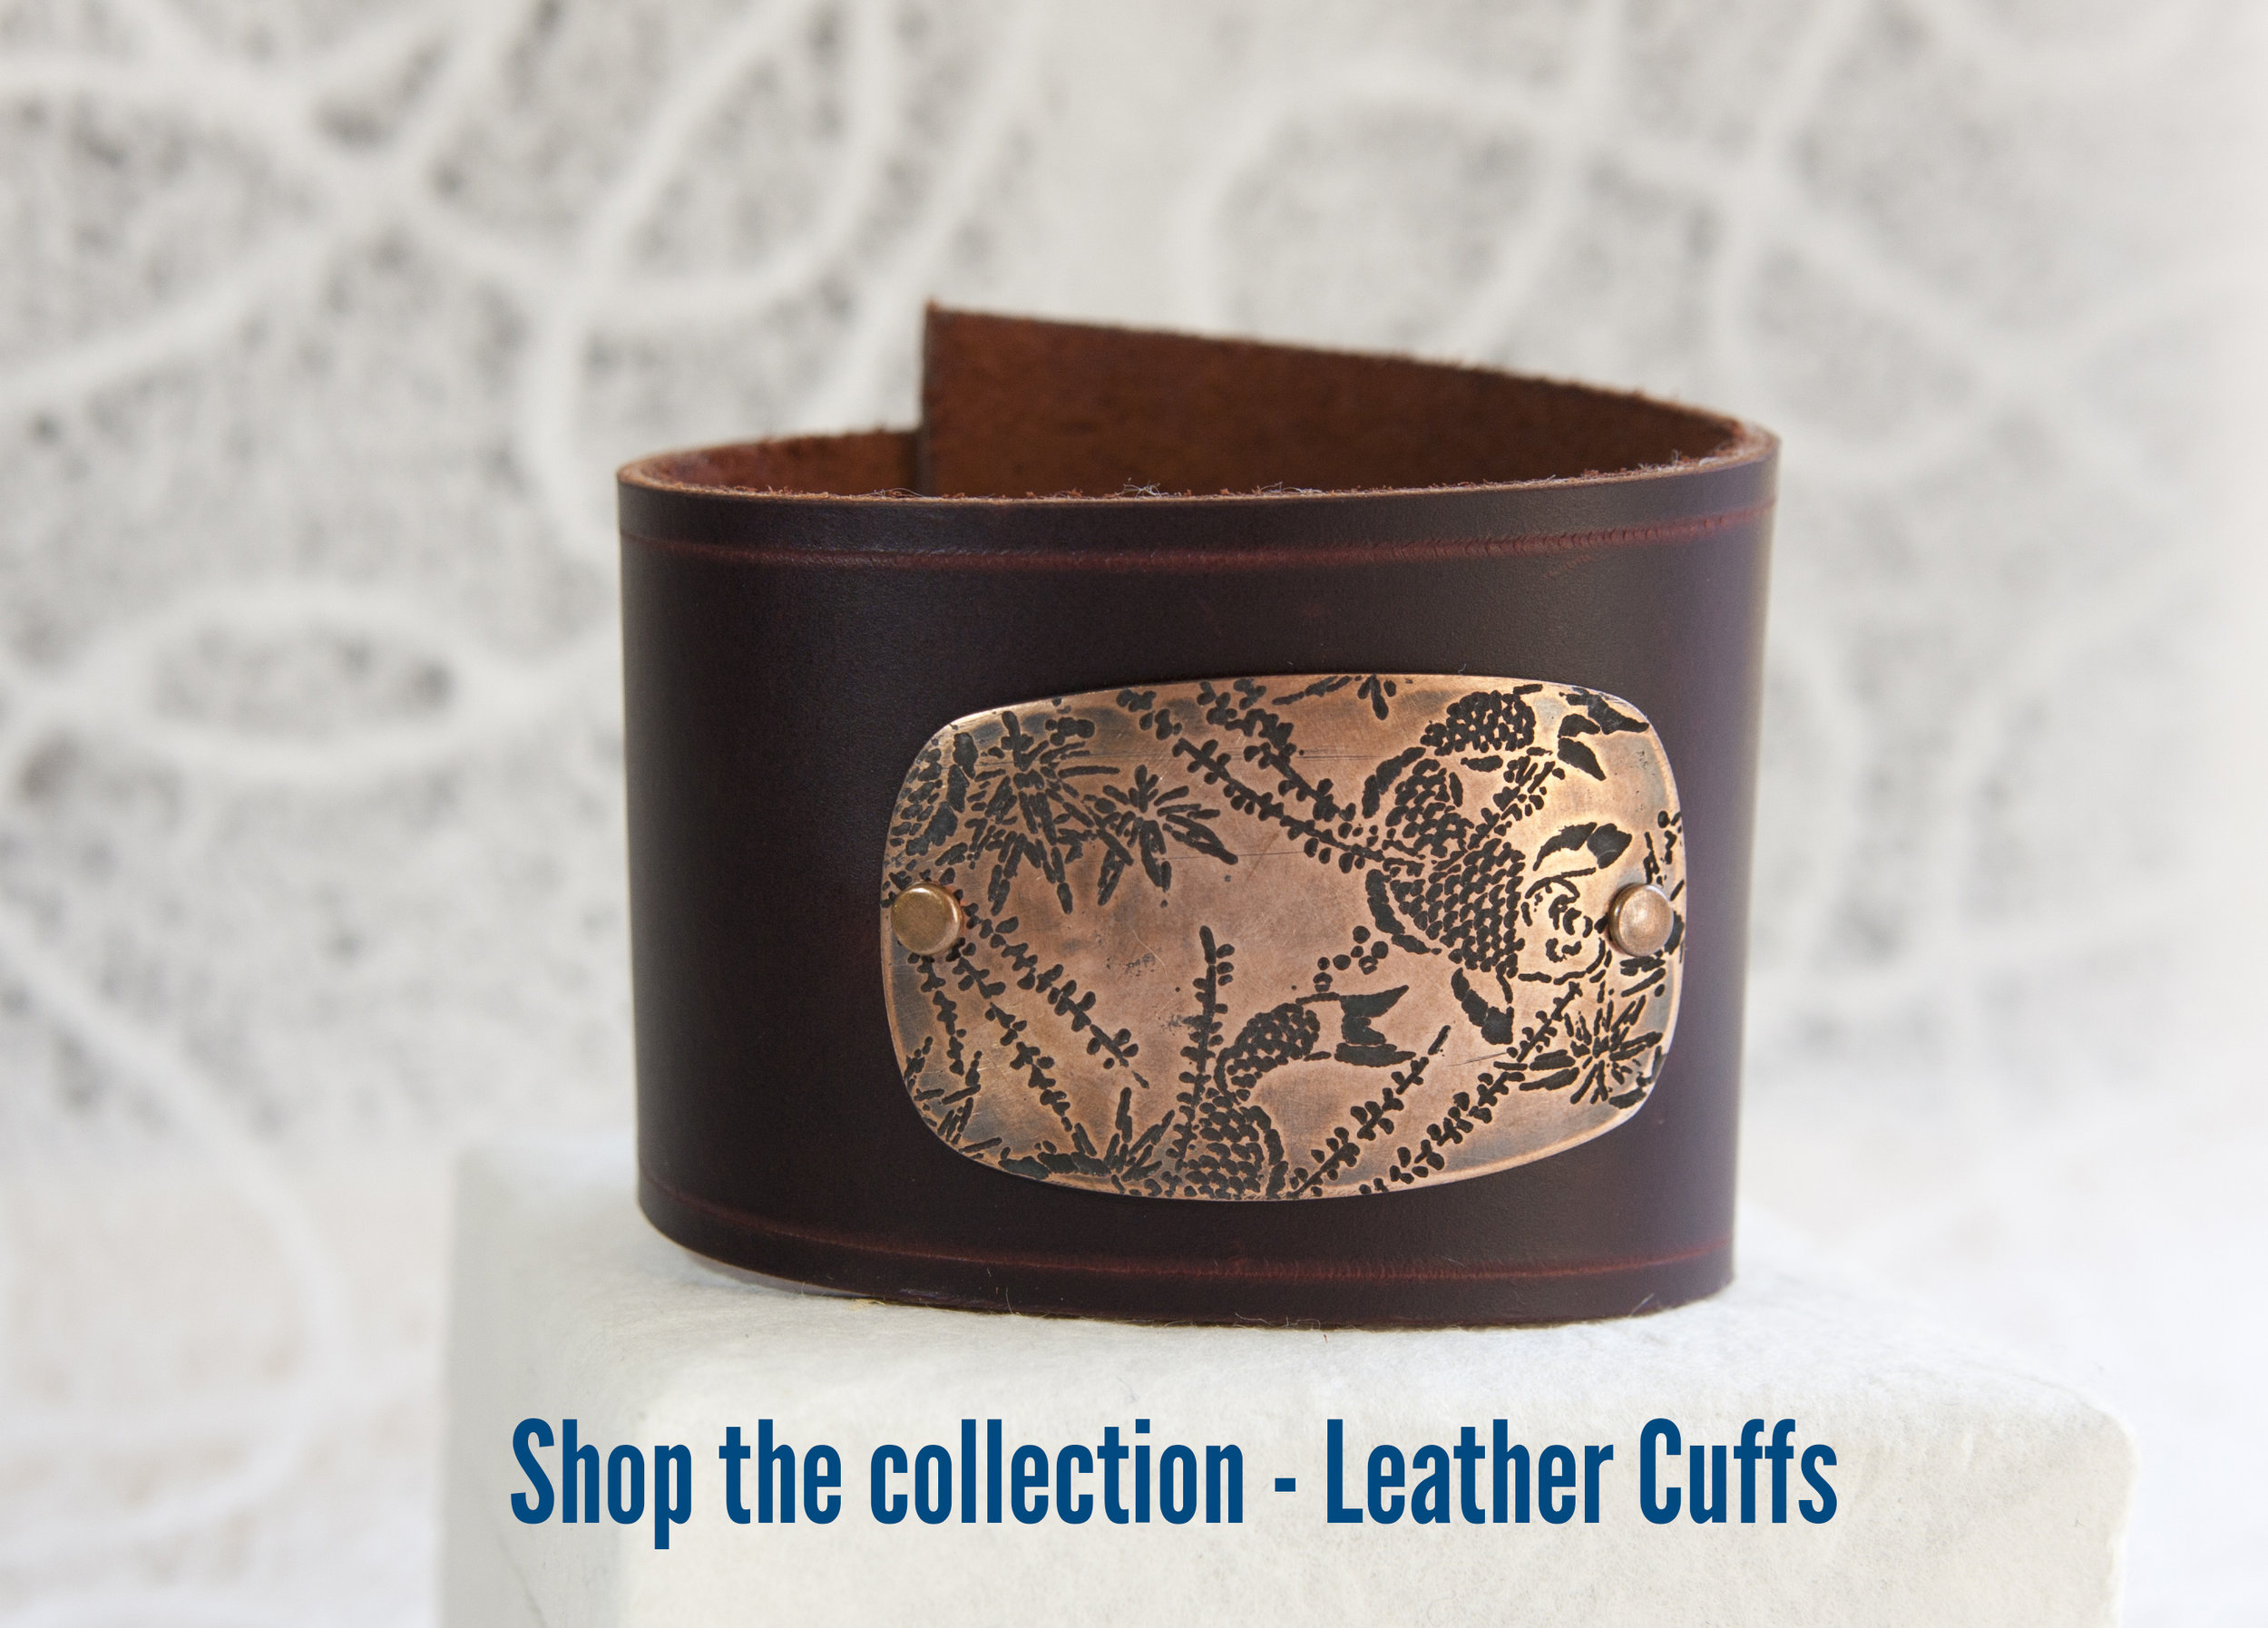 Leather-Etched-Cuff-Dana-Reed-category-image.jpg